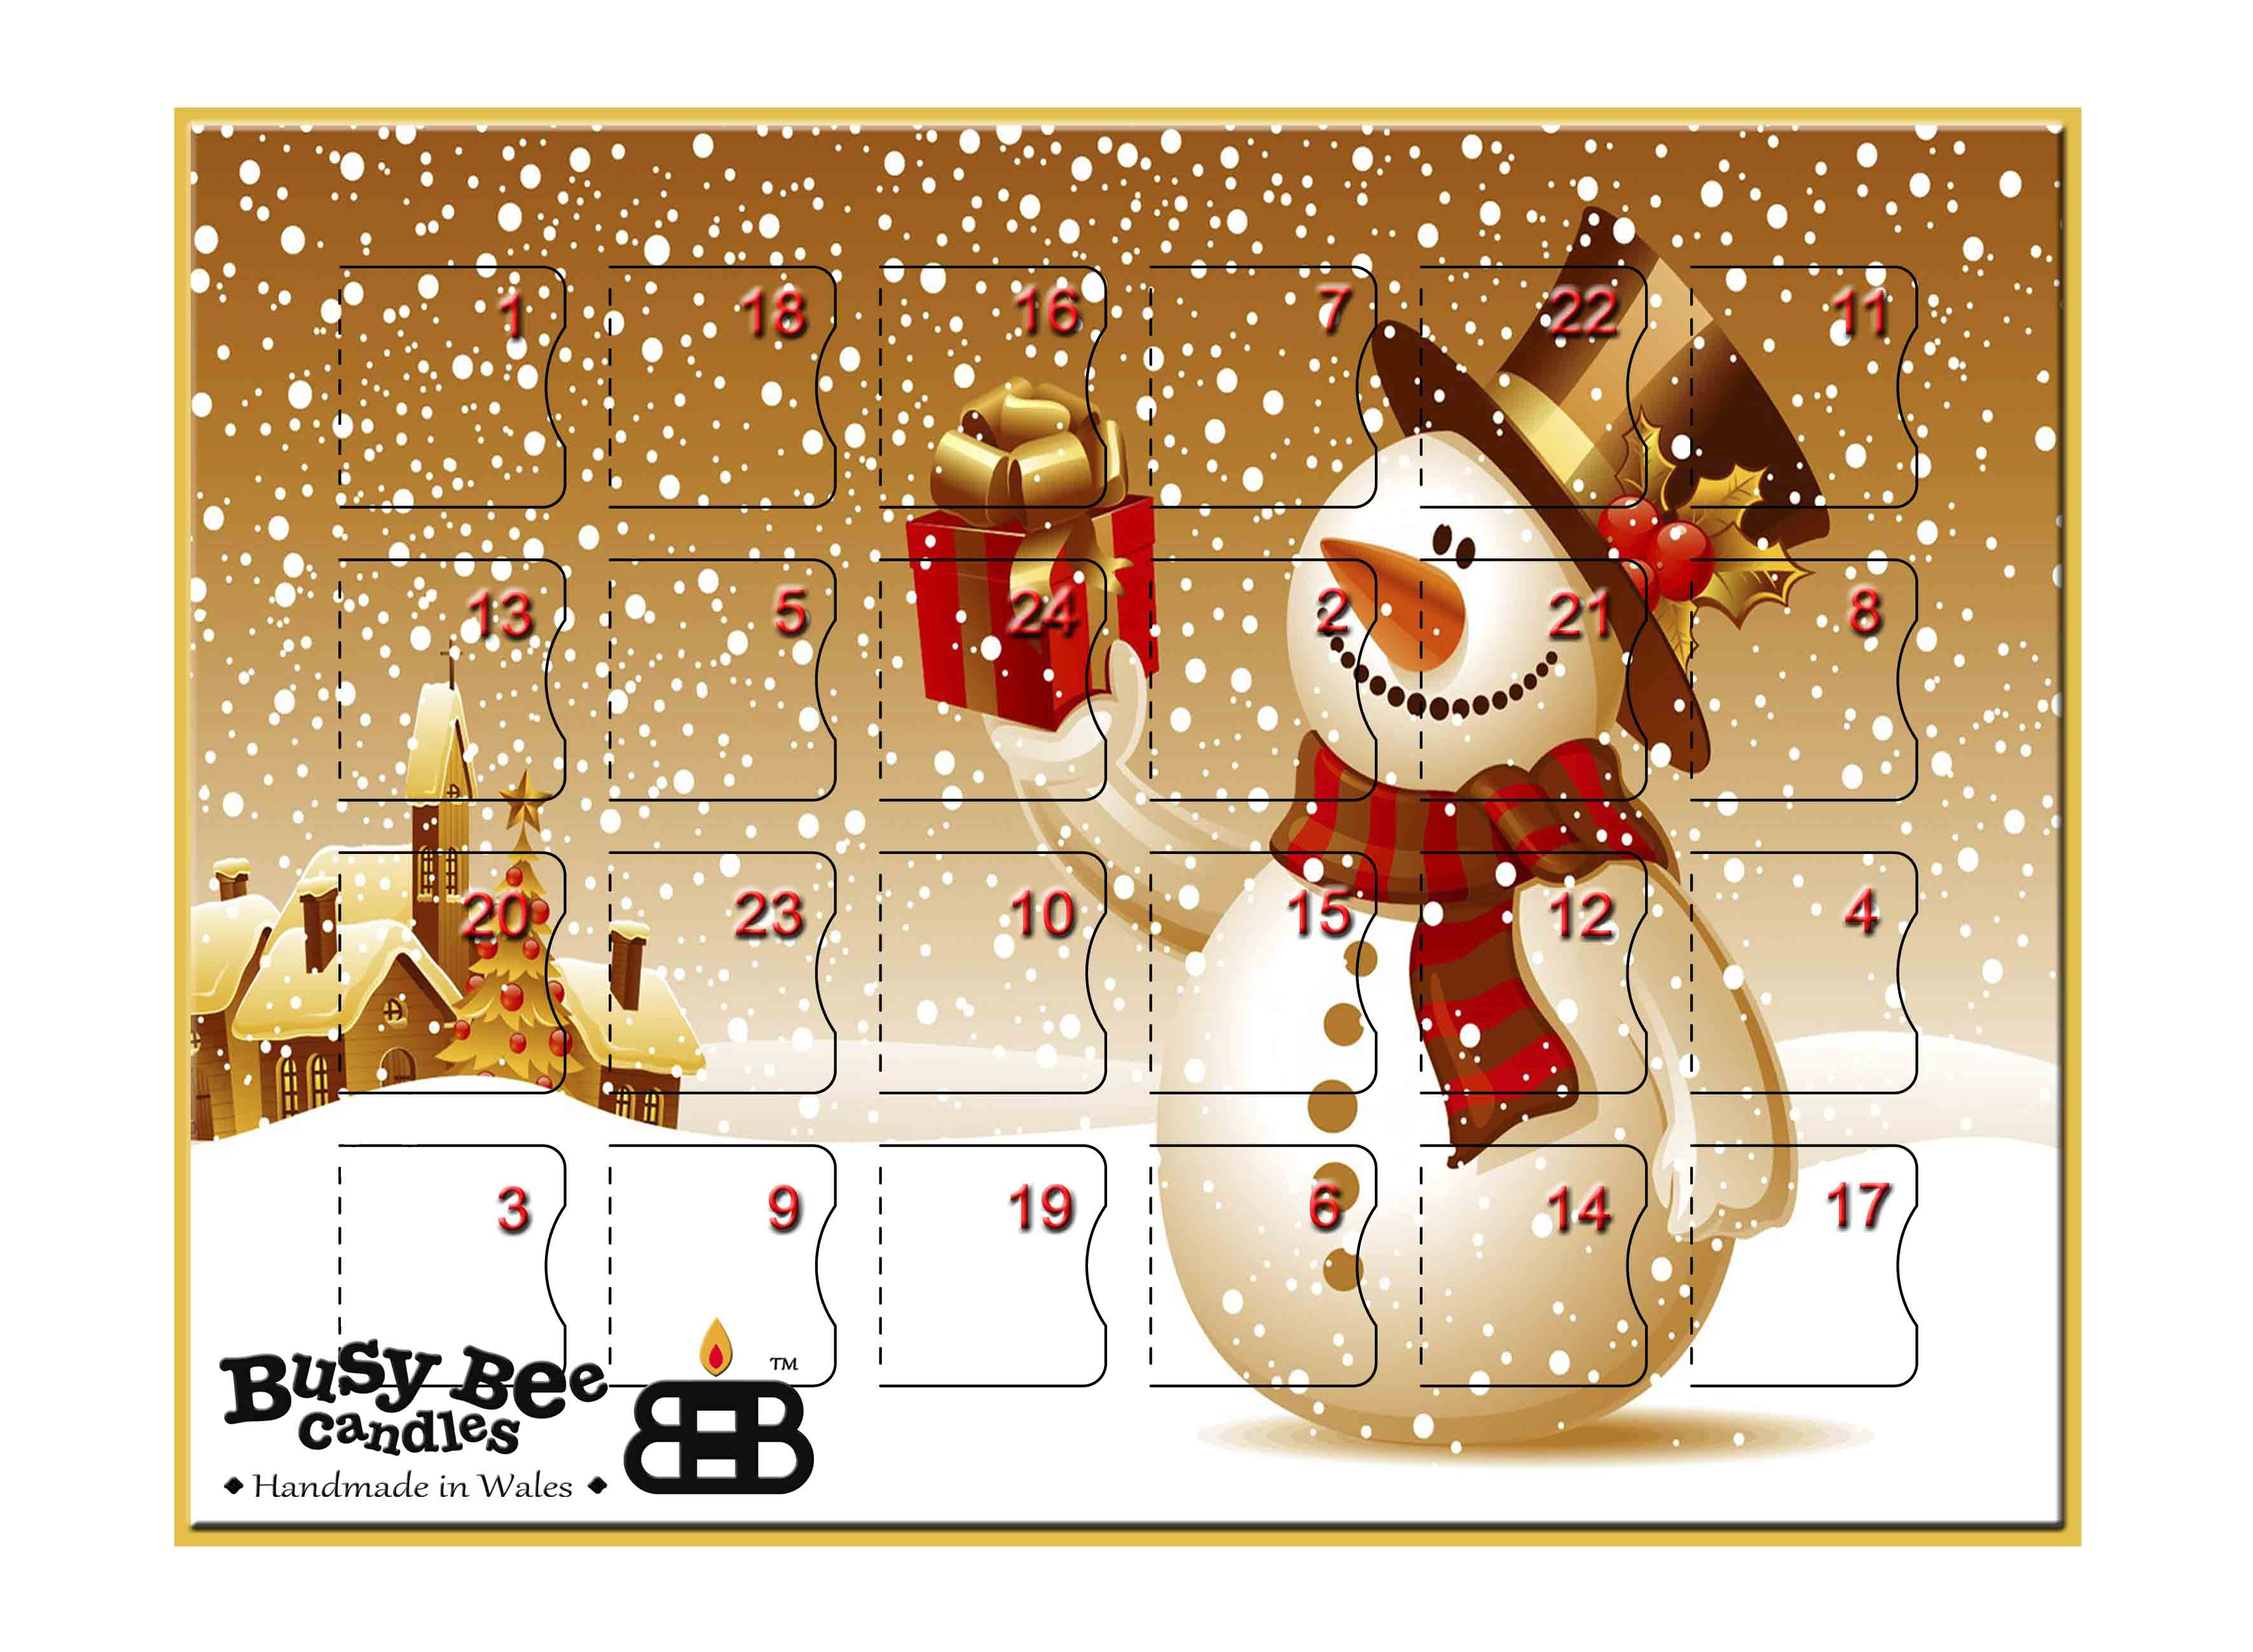 Christmas Calendar 2016 : Scented advent calendar from busy bee candles christmas